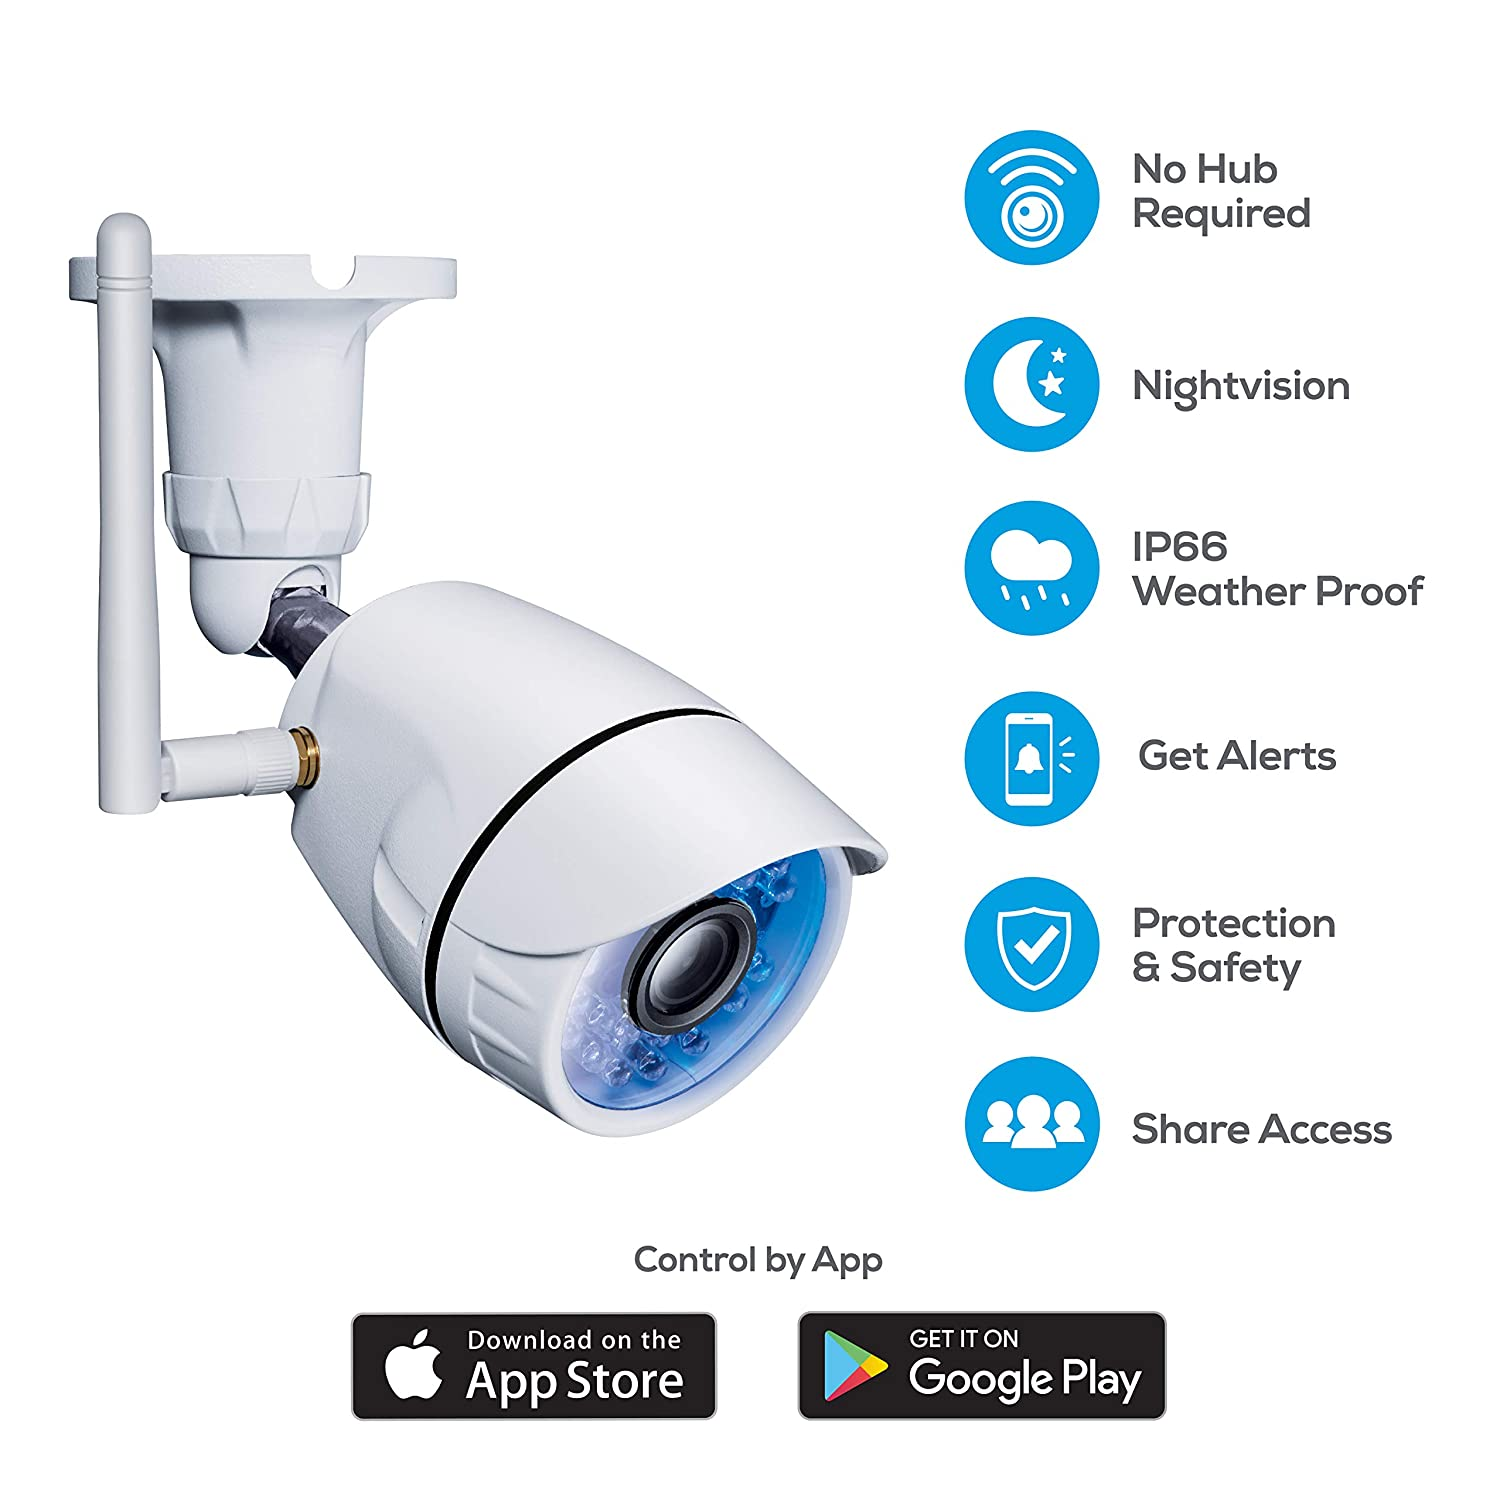 Amazon.com : Geeni Hawk Outdoor Smart Wi-Fi Security Camera with Night Vision, Motion Alerts and IP66 Weatherproof, White : Camera & Photo